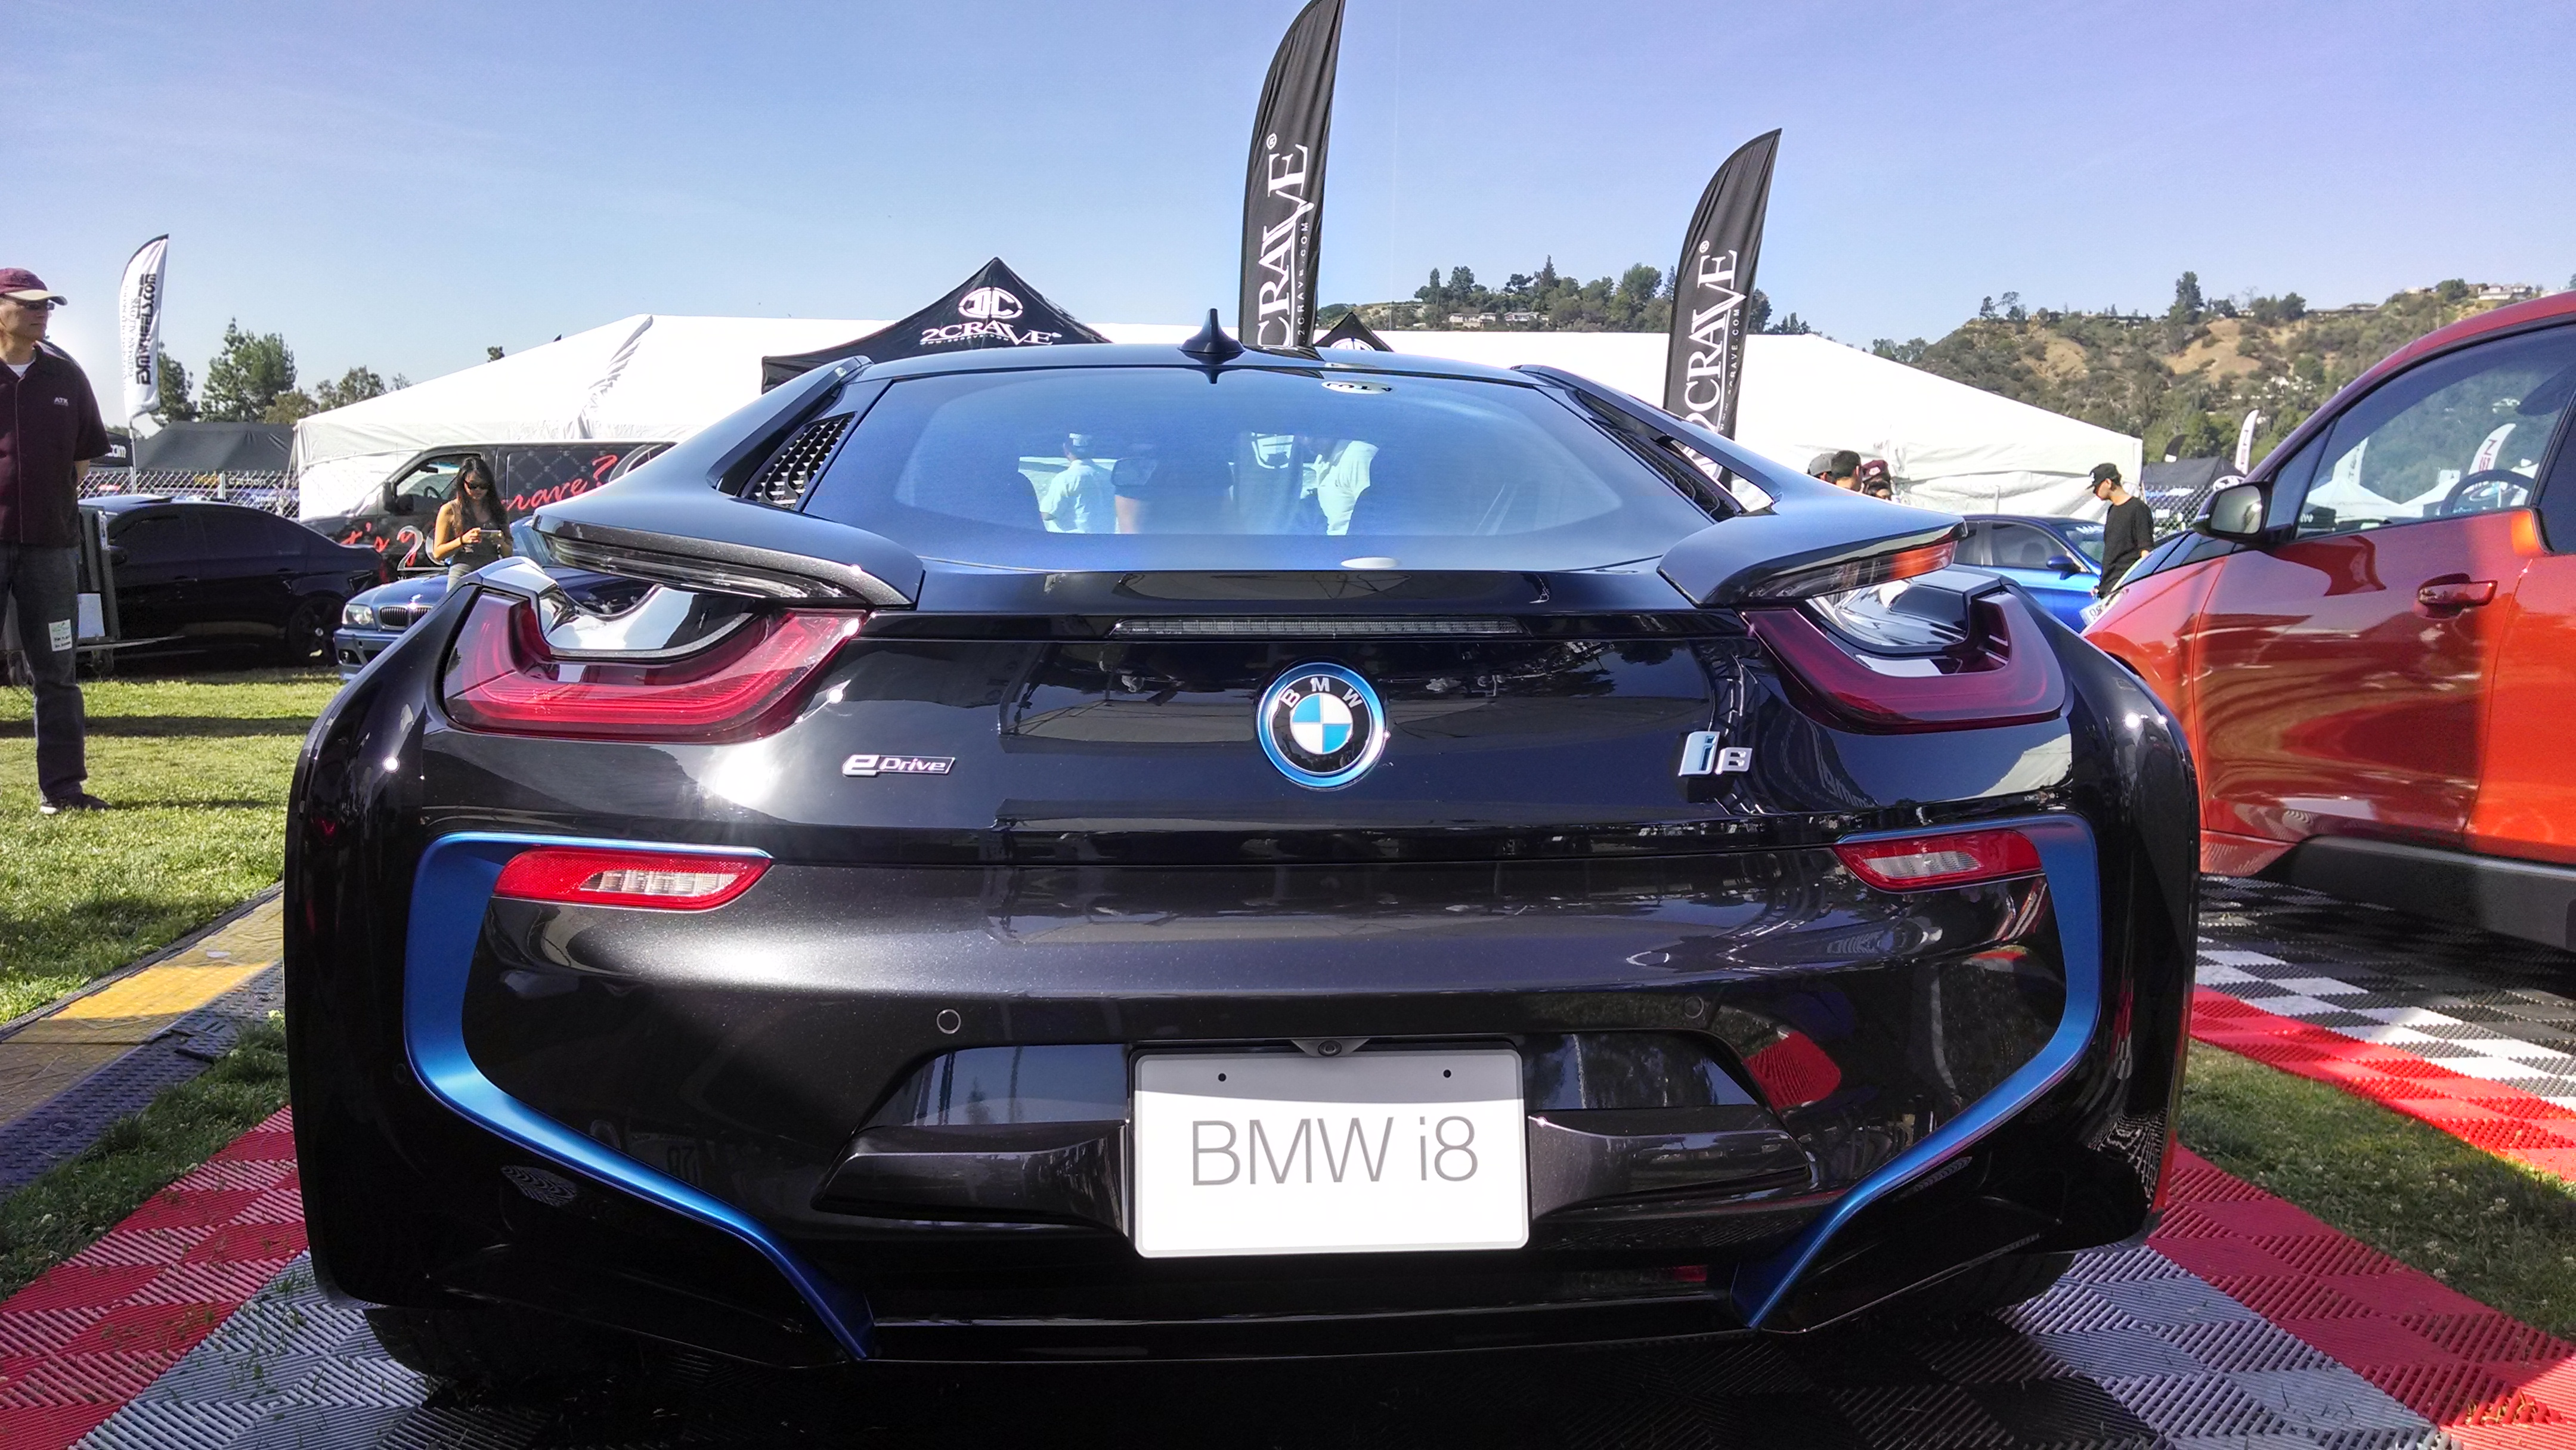 THE NEW I8